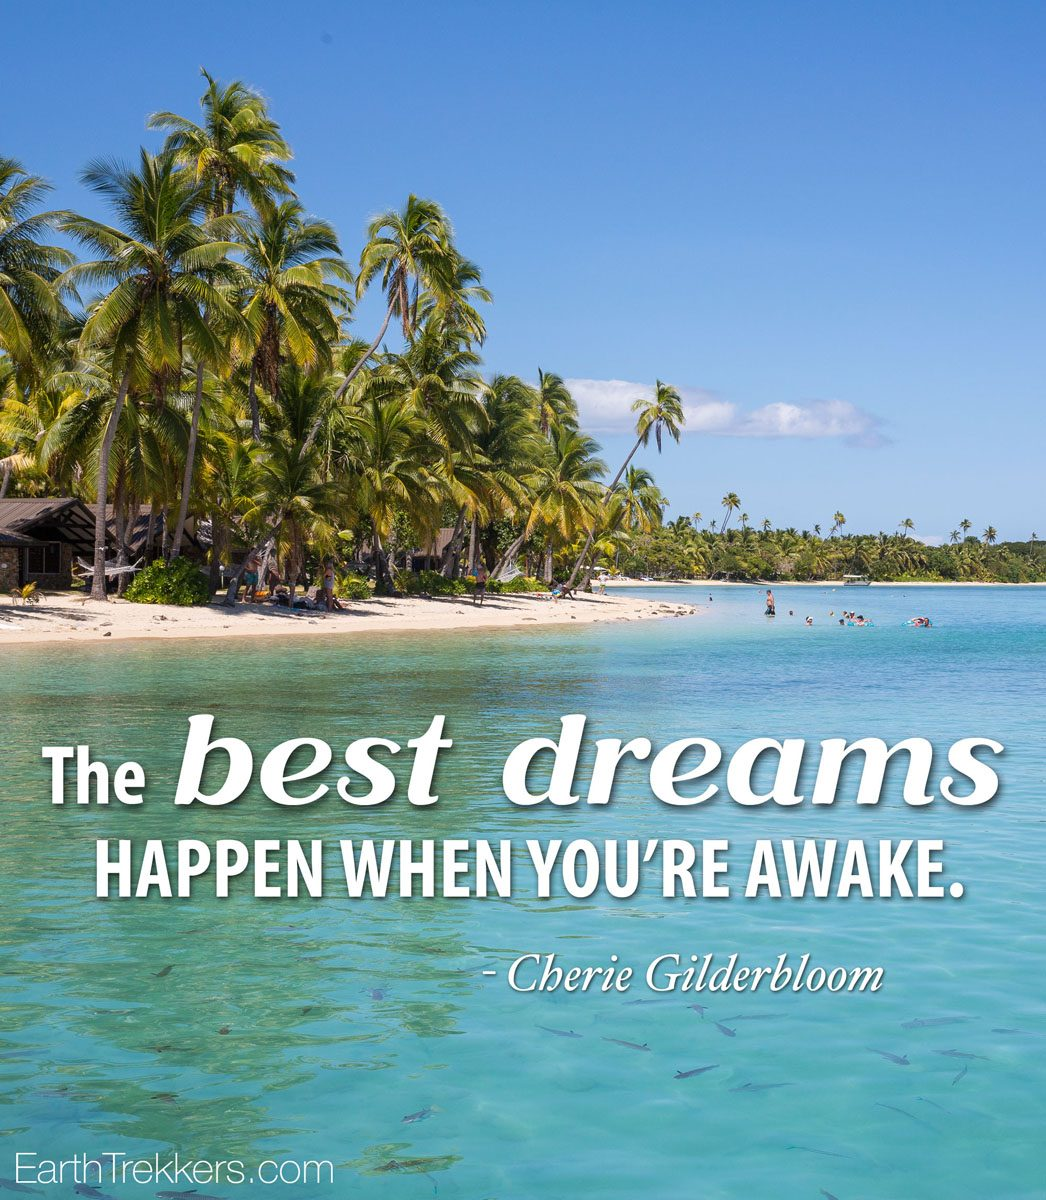 The best dreams happen when youre awake